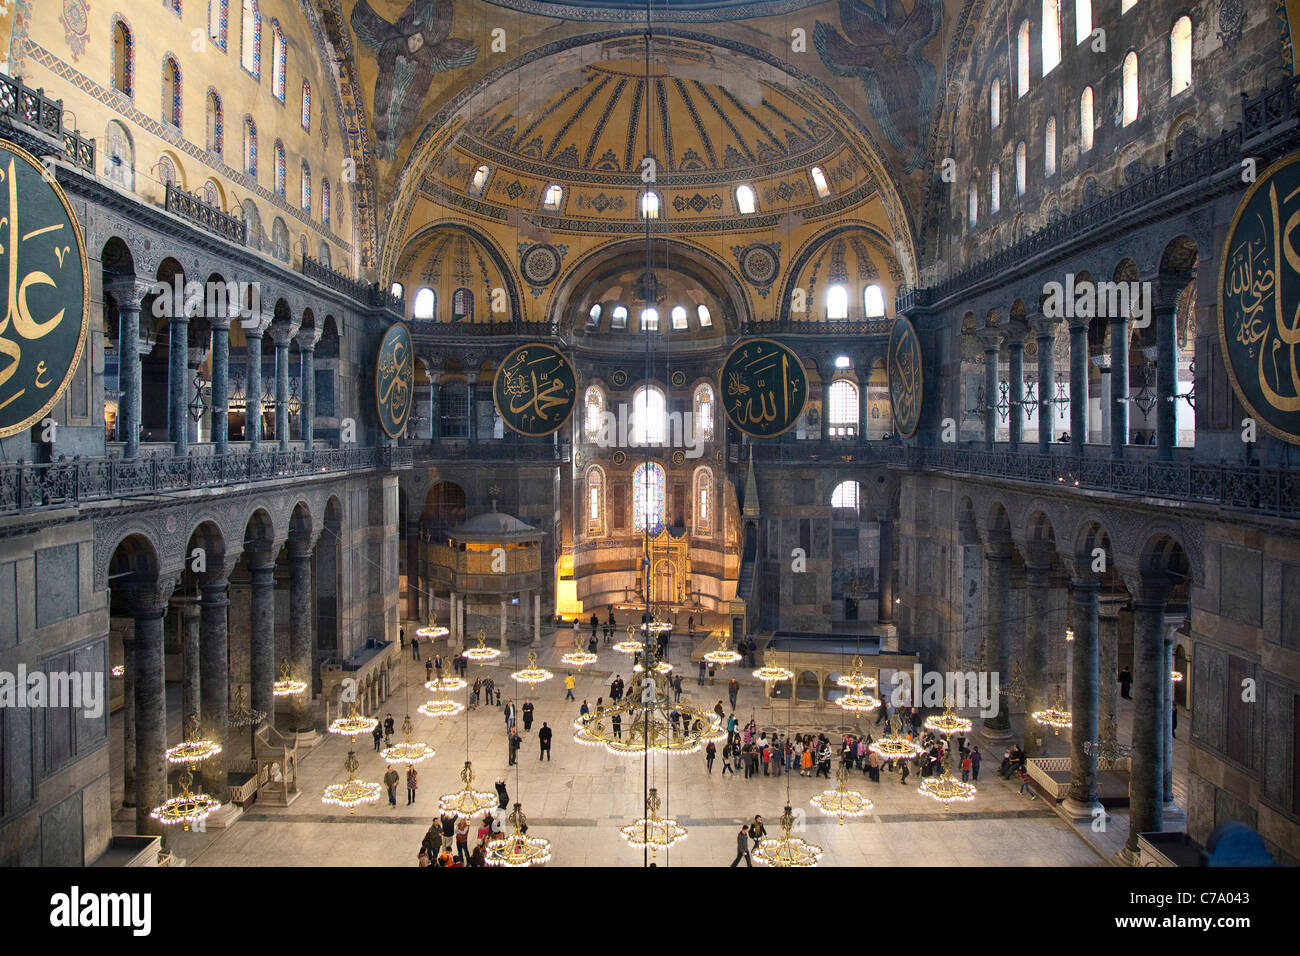 Birdseye View of Nave and Chancel Interior from Upper Level at Hagia Sophia; Istanbul, Turkey - Stock Image